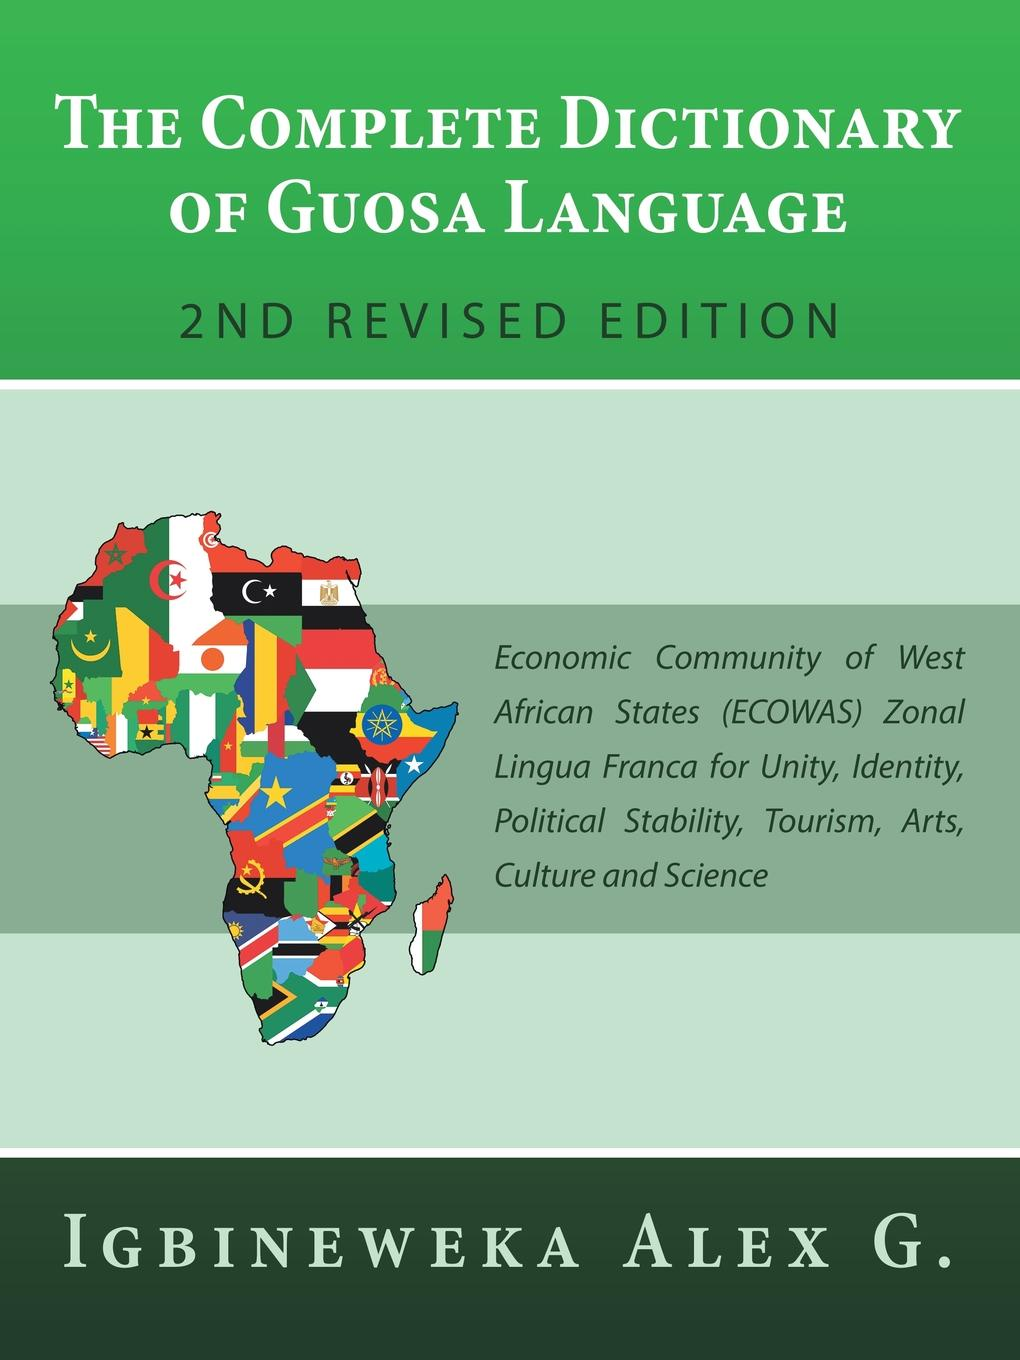 Igbineweka Alex G. The Complete Dictionary of Guosa Language 2Nd Revised Edition. Economic Community of West African States (Ecowas) Zonal Lingua Franca for Unity, Identity, Political Stability, Tourism, Arts, Culture and Science random house webster s dictionary revised edition